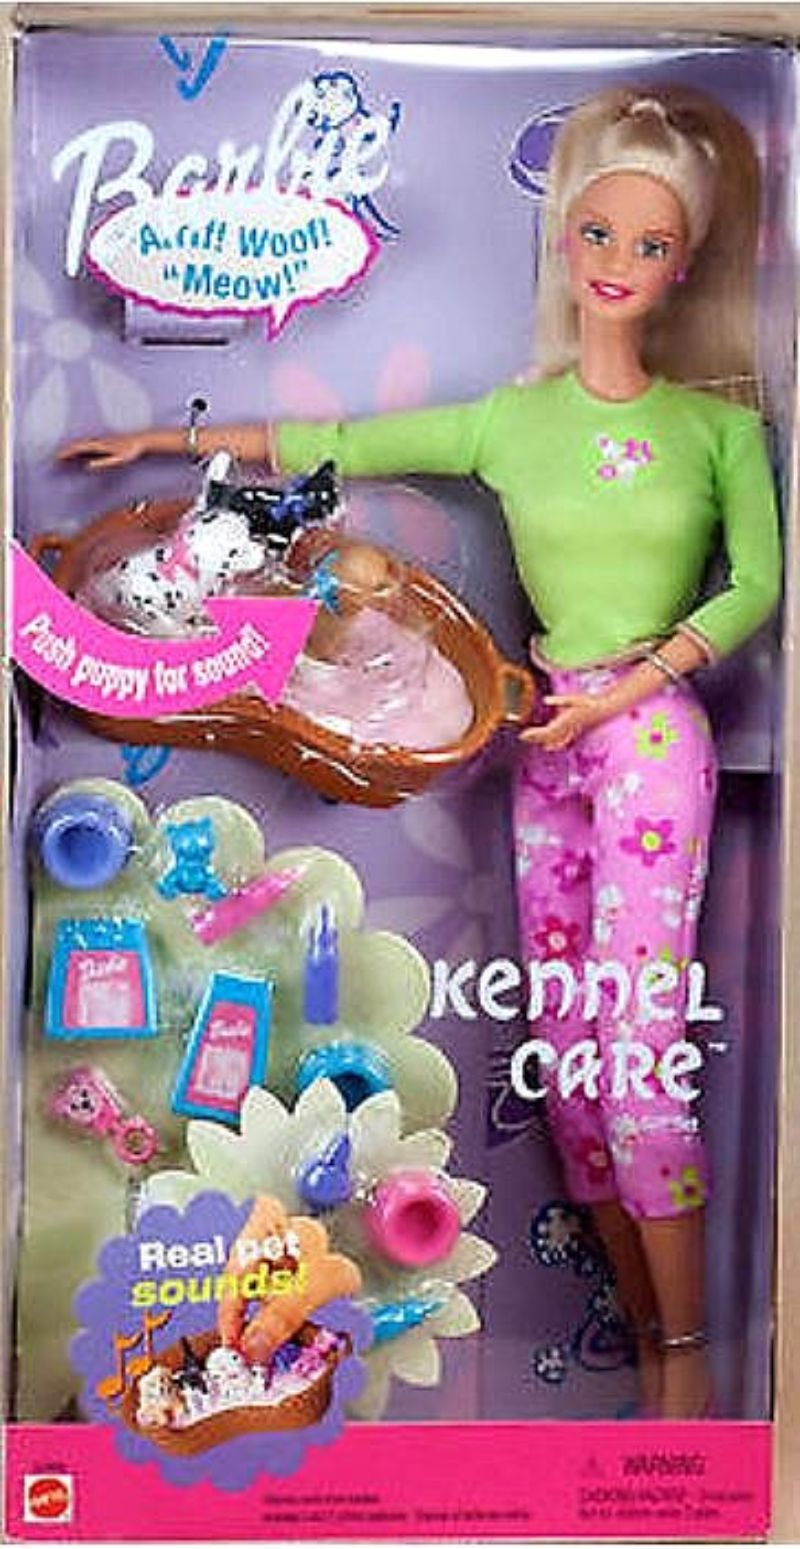 Barbie Kennel Care Barbie Doll Gift Set Box 53449 Value And Details Barbie Puppy Doll Gift Barbie Toys